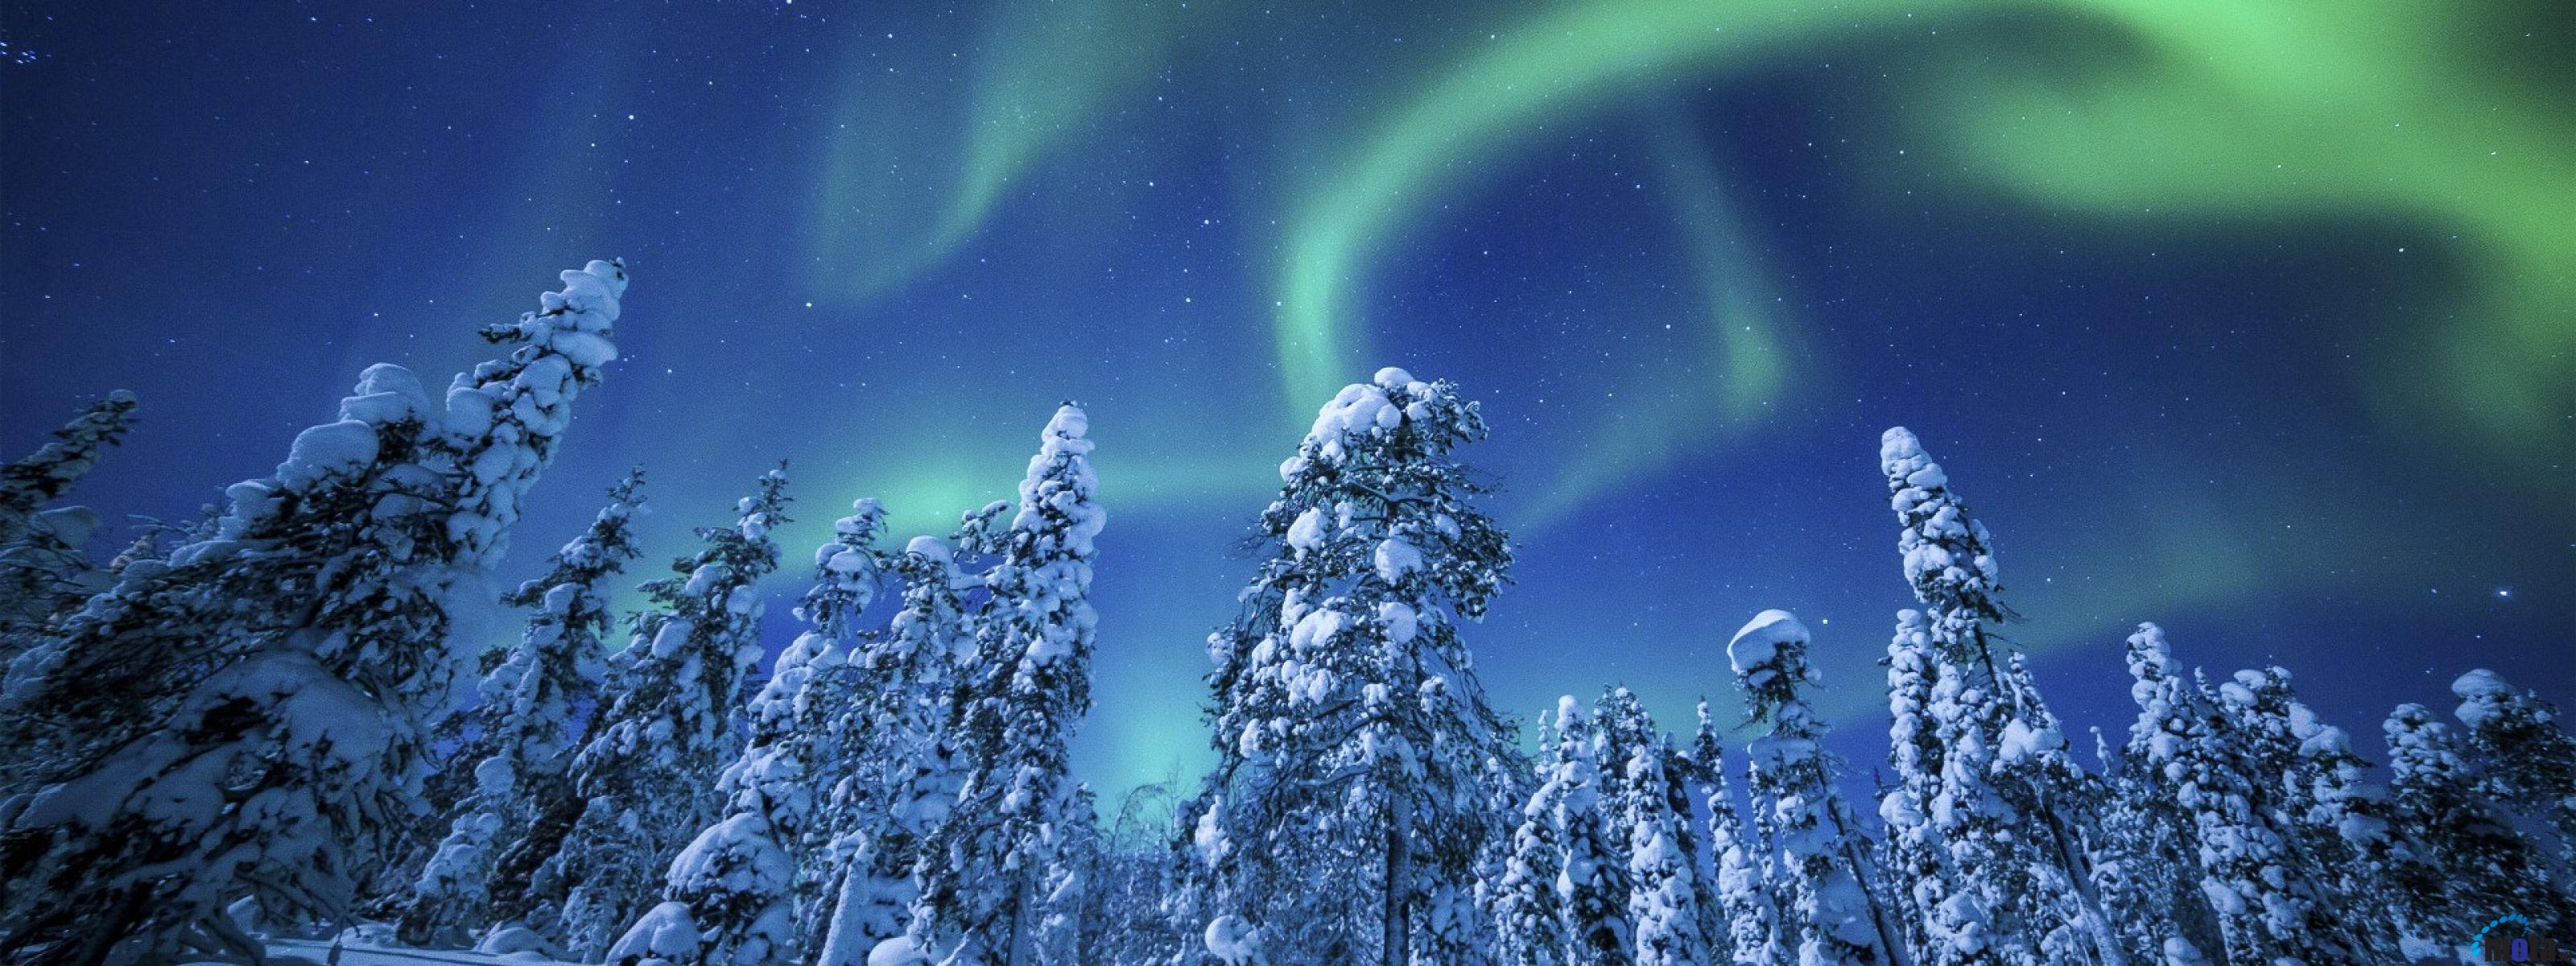 Desktop wallpapers Northern lights over pine forest 3200x1200